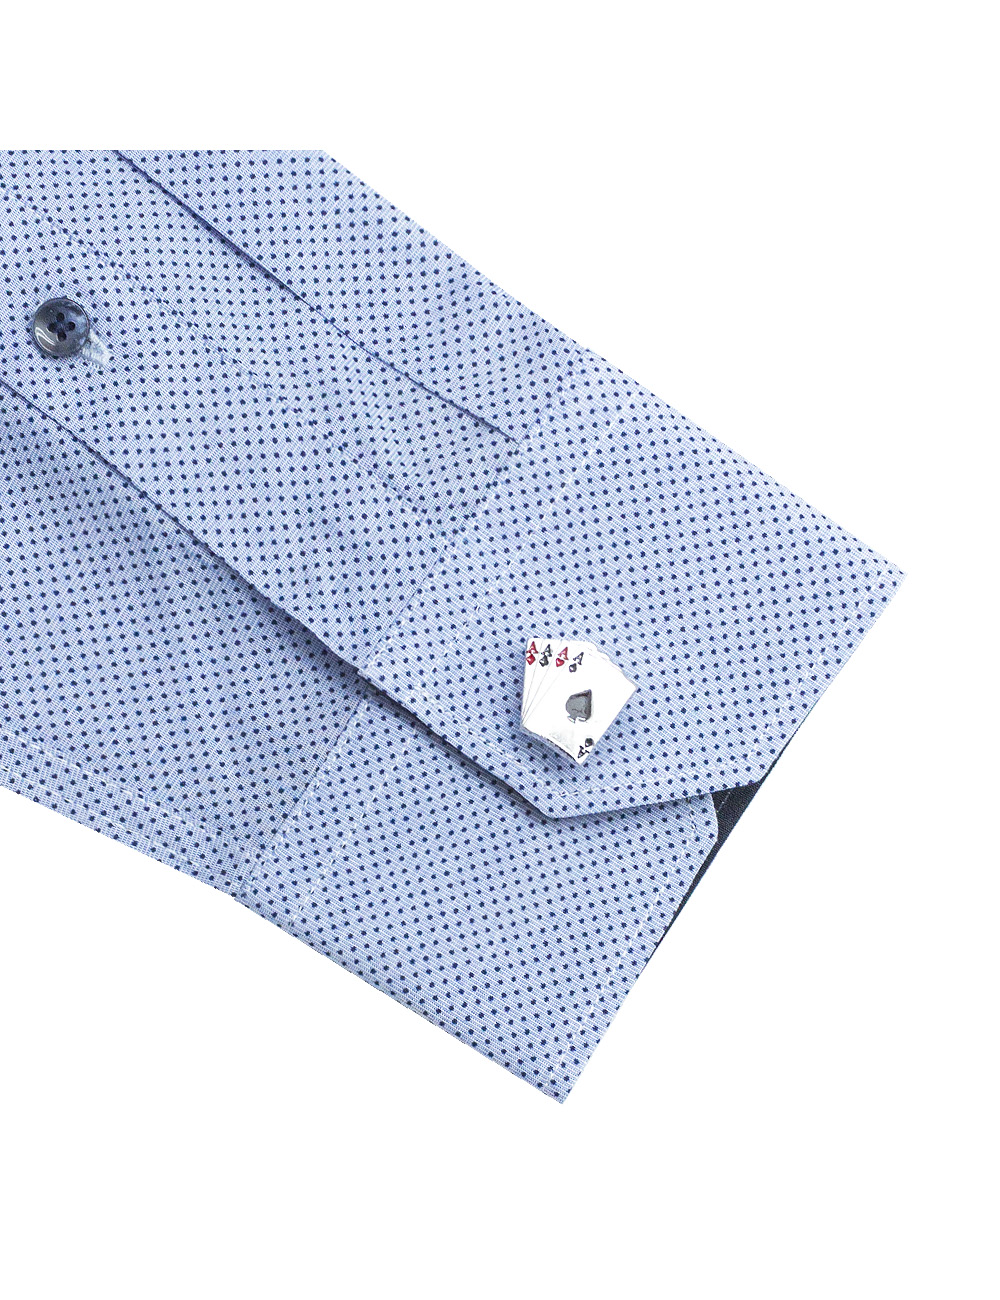 Blue With Navy Polka Dots Slim / Tailored Fit Long Sleeve Shirt - TF2A20.20